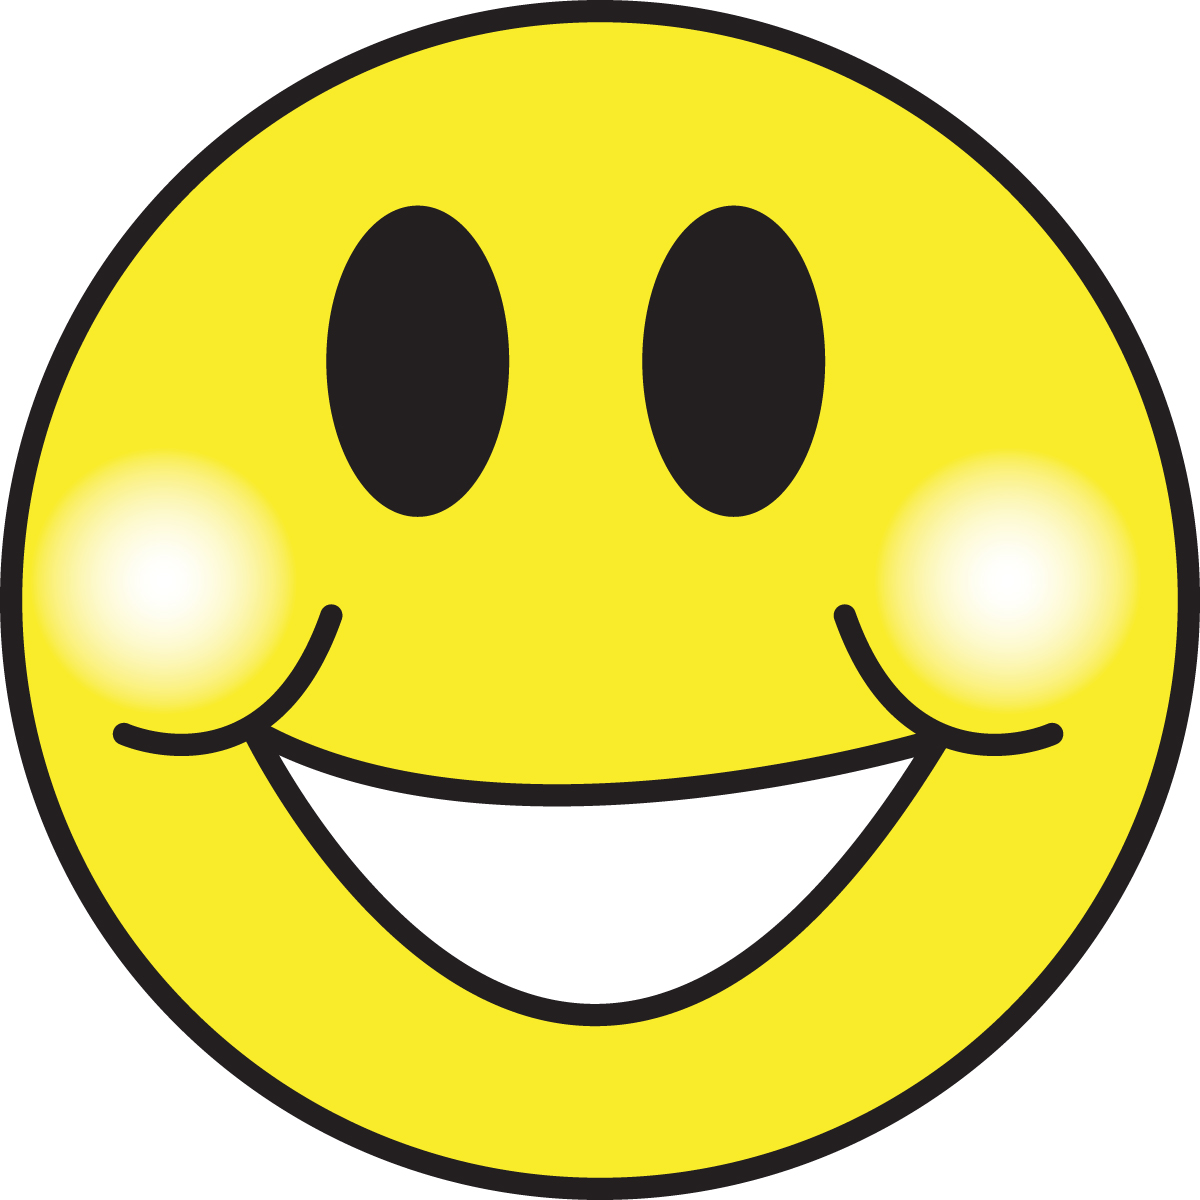 1200x1200 Smileys Clipart Animated Smiling Faces